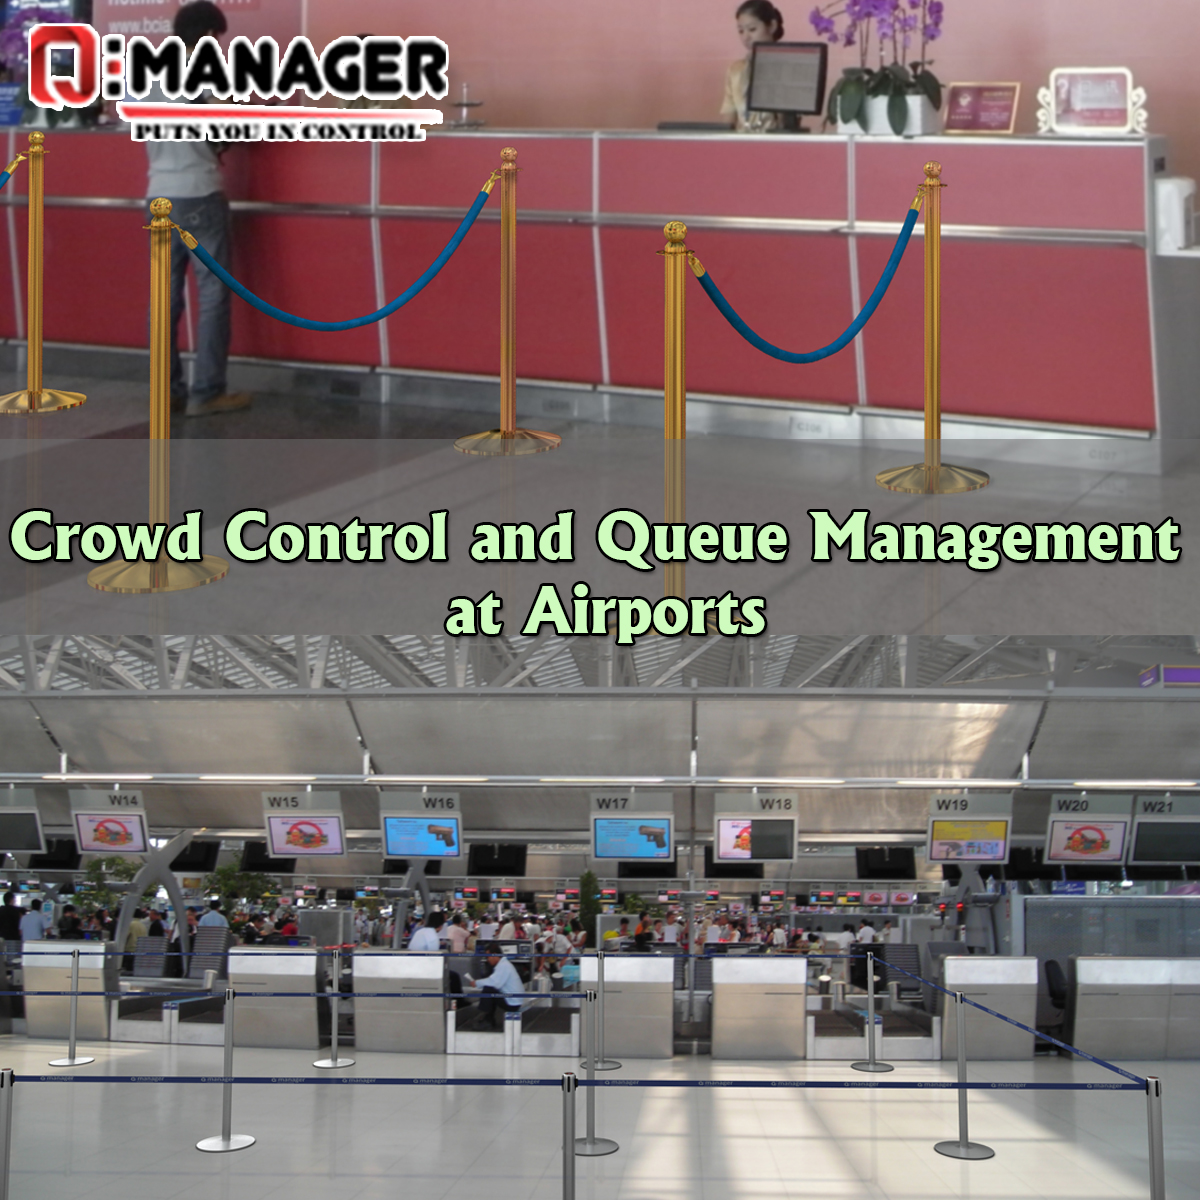 Crowd Control and Queue Management at Airports